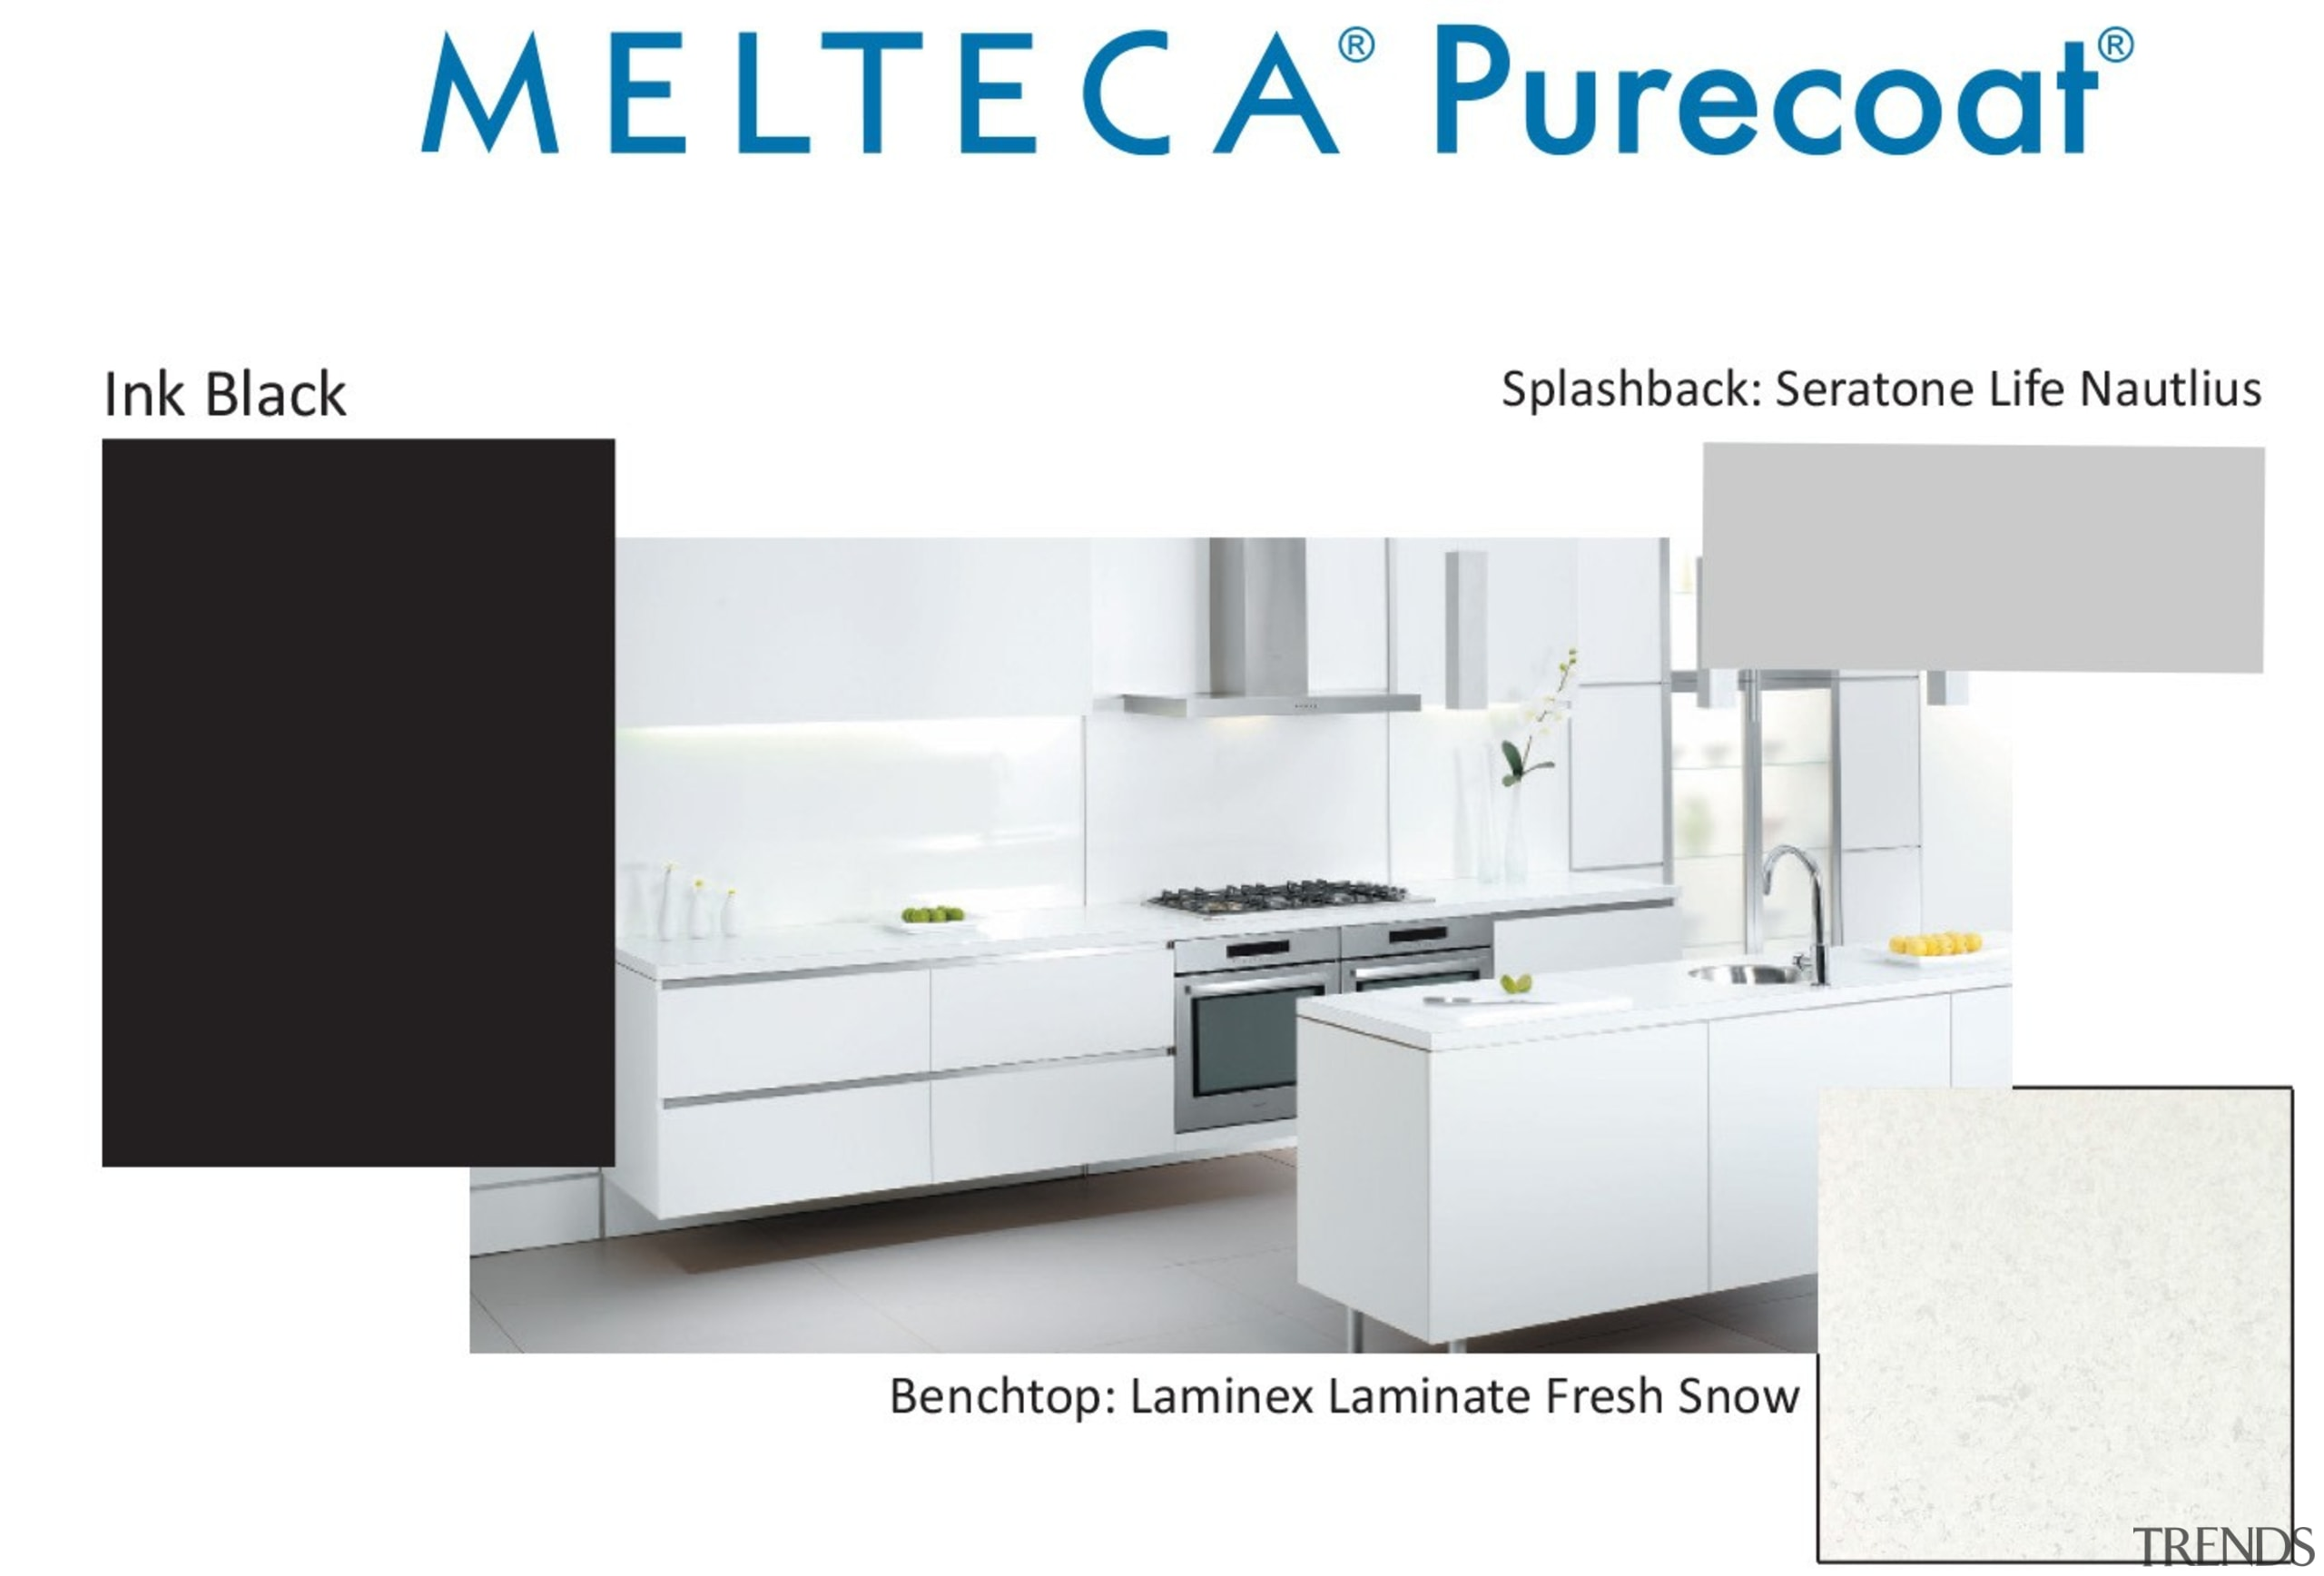 New Zealand made Melteca Purecoat surfaces utilise cutting-edge bathroom accessory, furniture, kitchen, product, product design, table, white